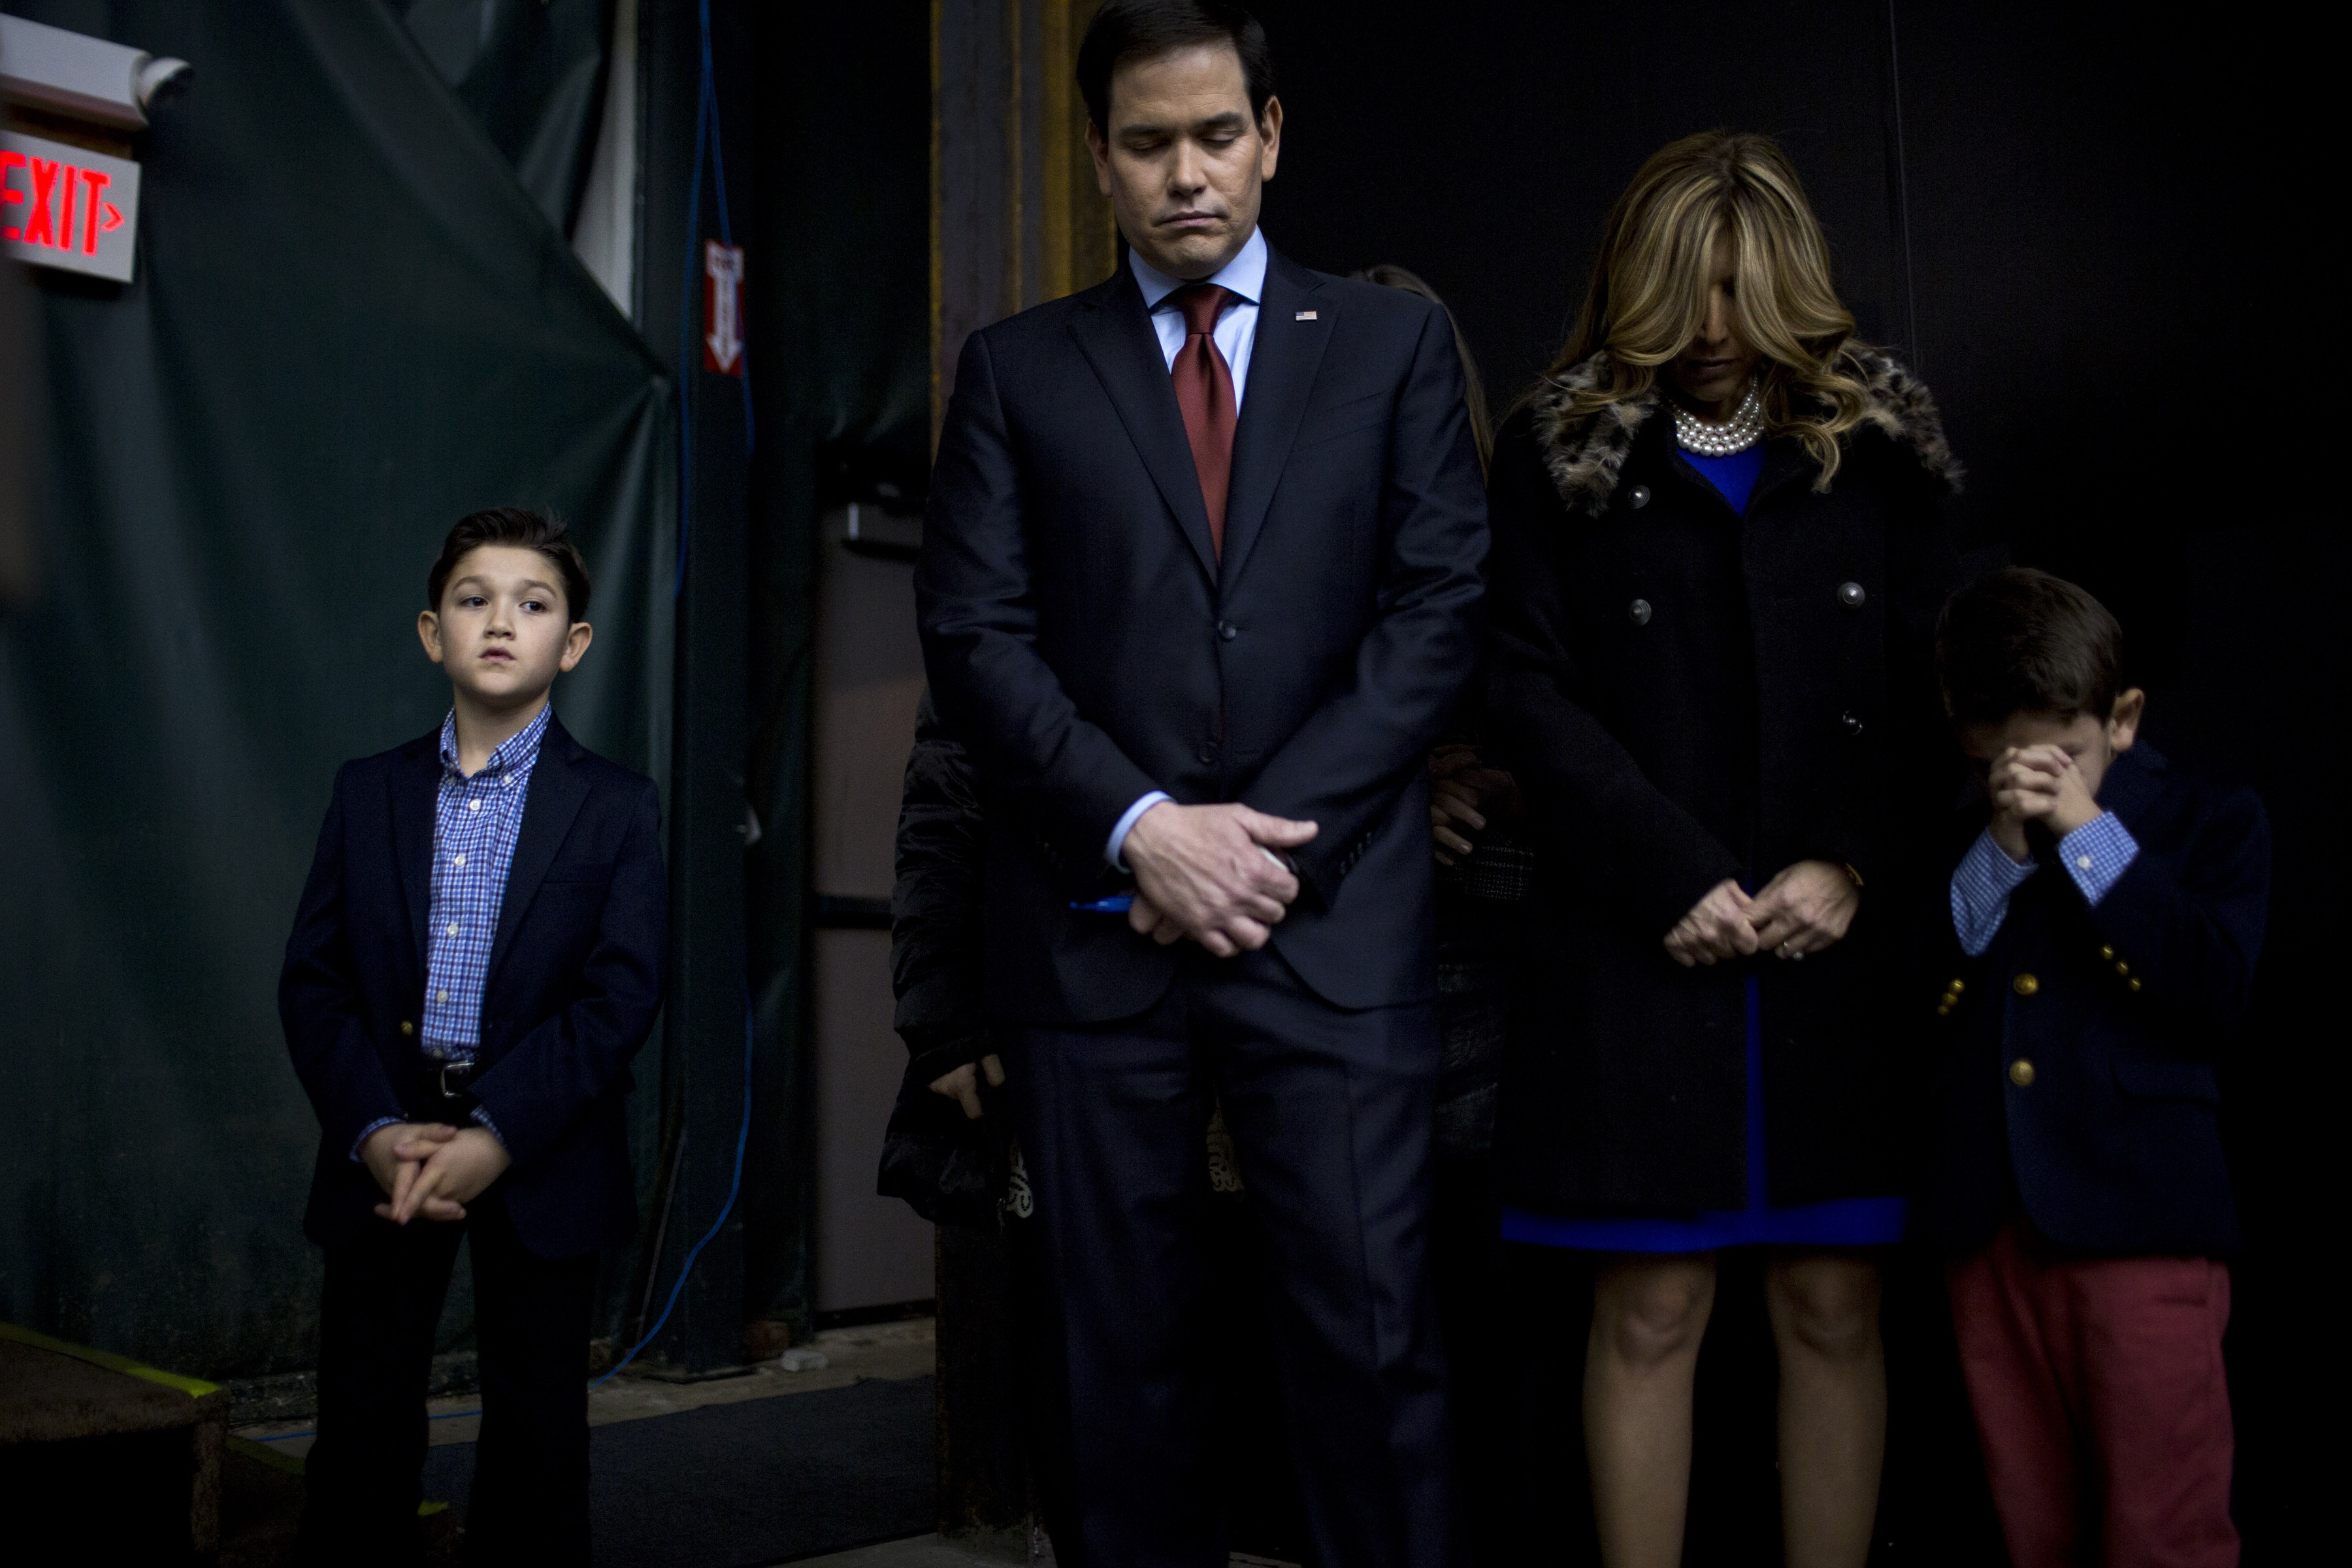 Republican presidential candidate Marco Rubio appeared at a caucus event with his family on Feb. 1, 2016, at the 7 Flags Event Center in Clive, Iowa.